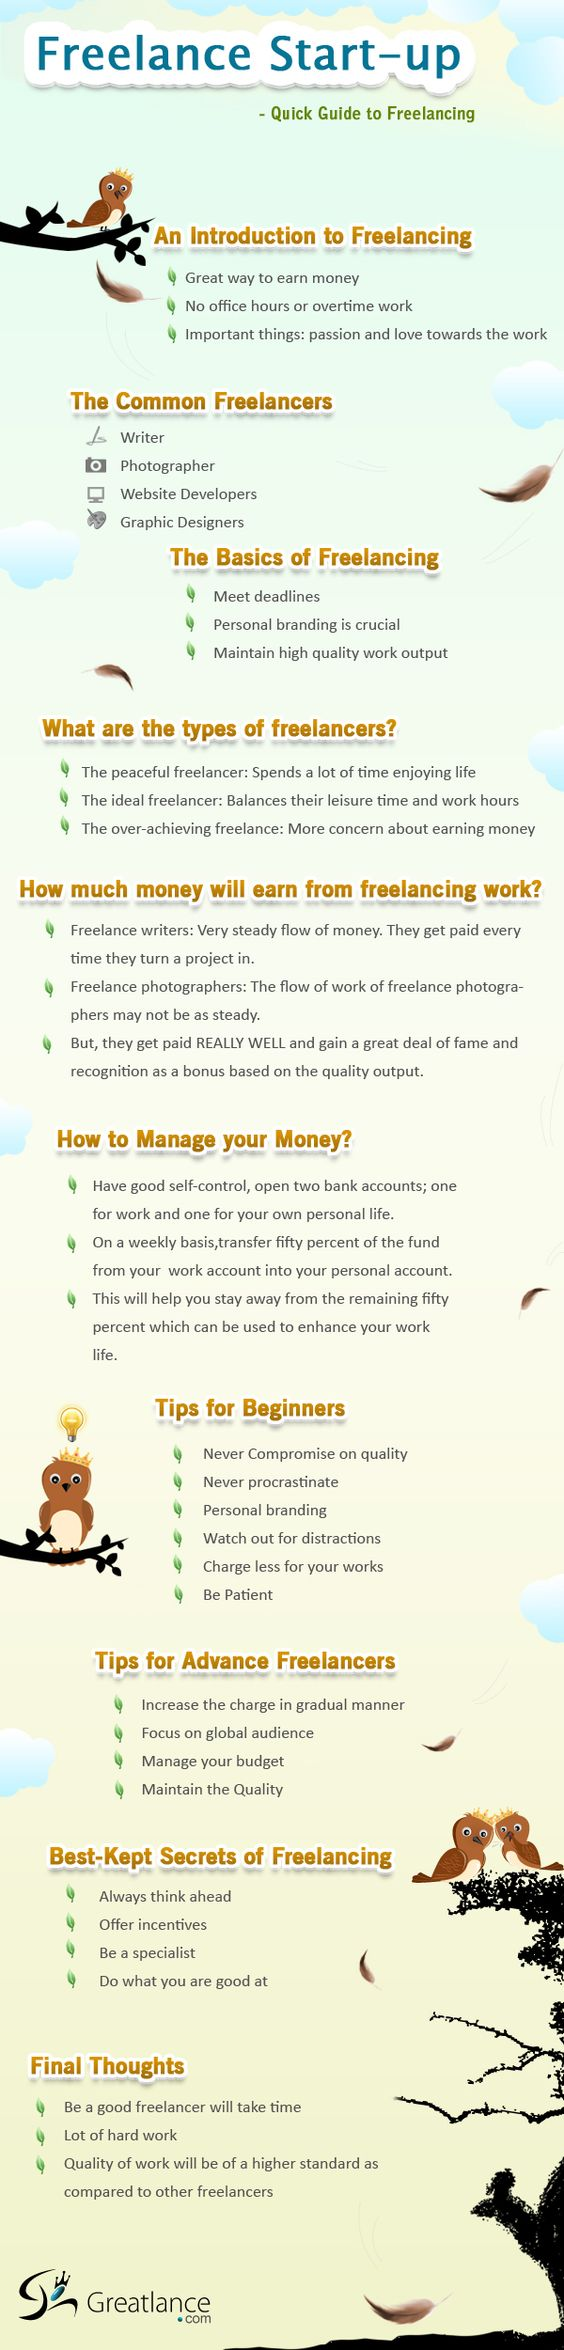 Freelance startup. How to Kick Start Your Freelance Business.